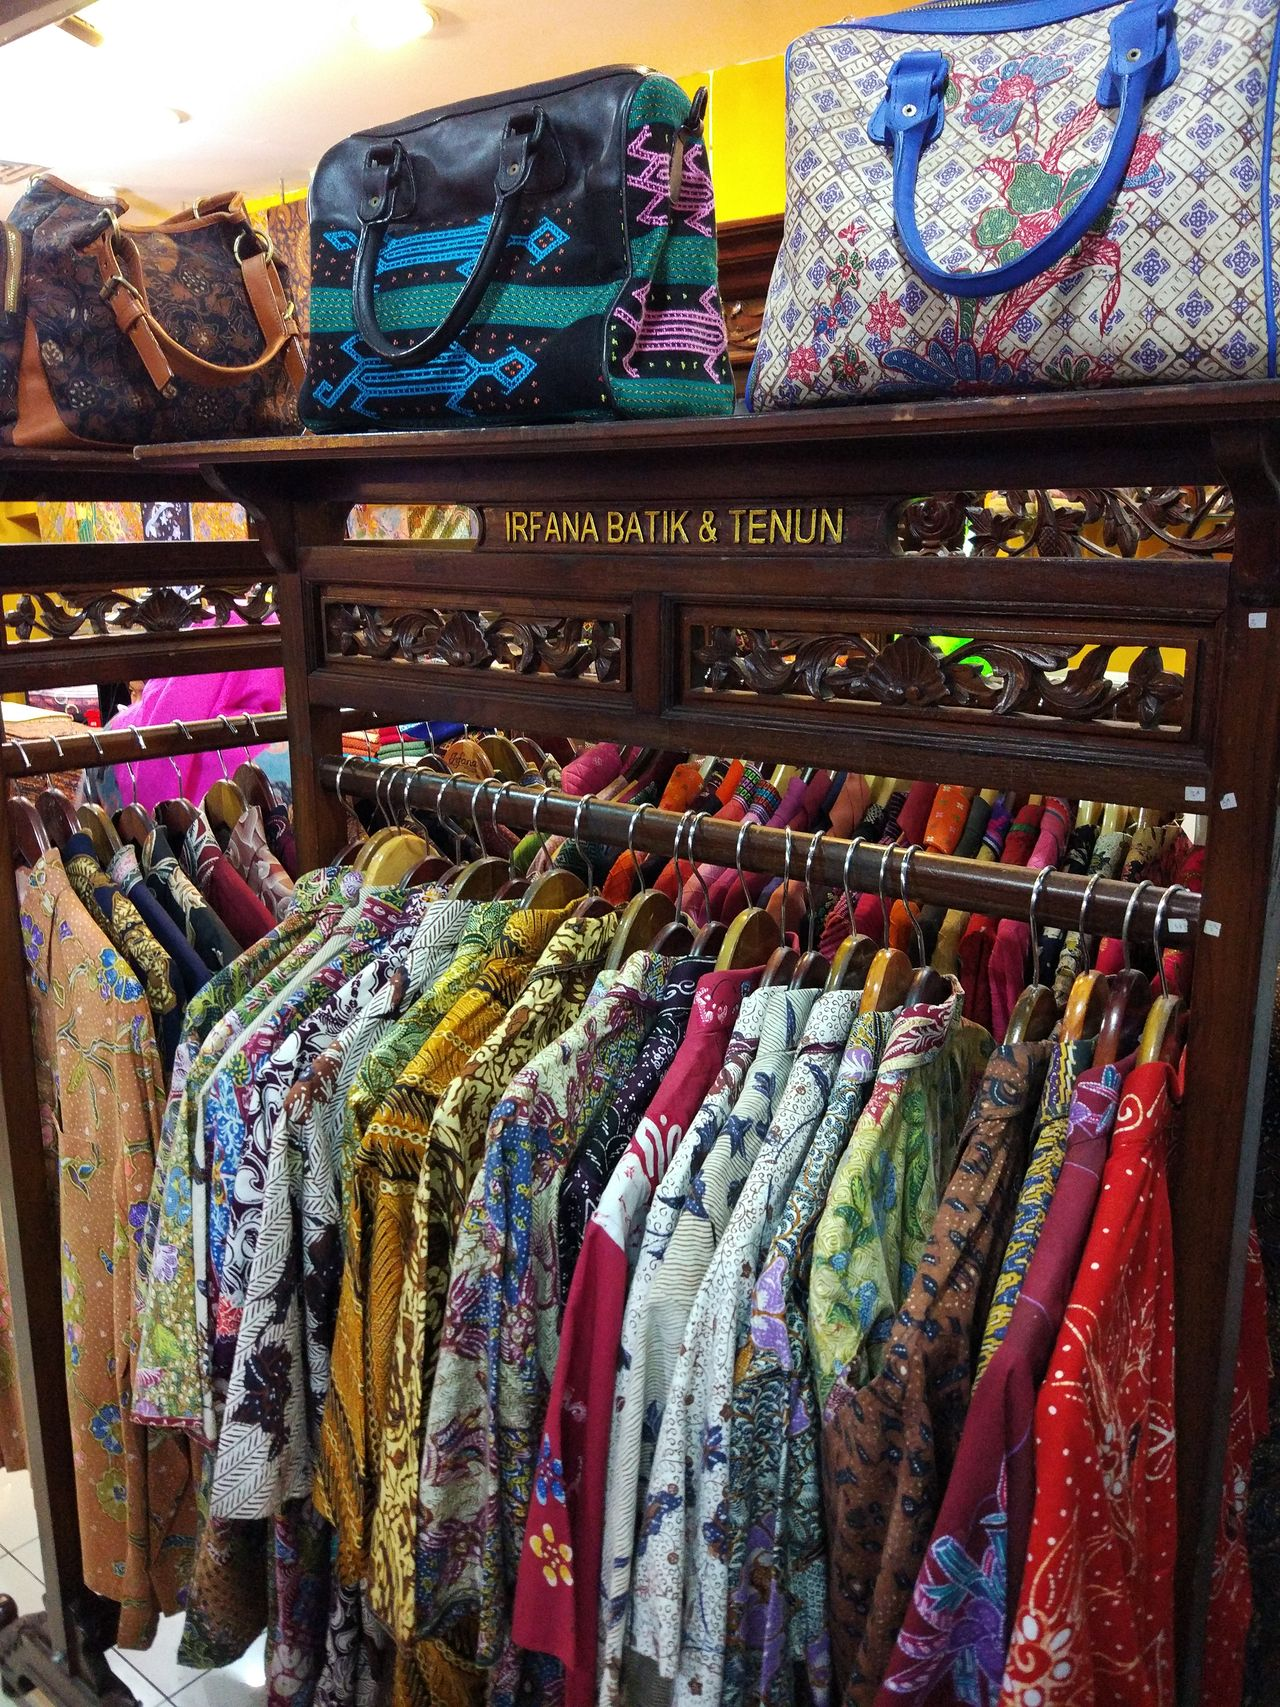 Handycraft Batikdesigner BatikIndonesia Batik Pattern Jakarta Street Photography Somewhere I Remember Somewhere Over The Rainbow Somewhere In The World Somewhere Outhere Business Market Market Stall Clothes Hanging Bagscollections Ethnicraft Ethnic Art Ethnic Craft\\\ ETHNIC ORNAMENT